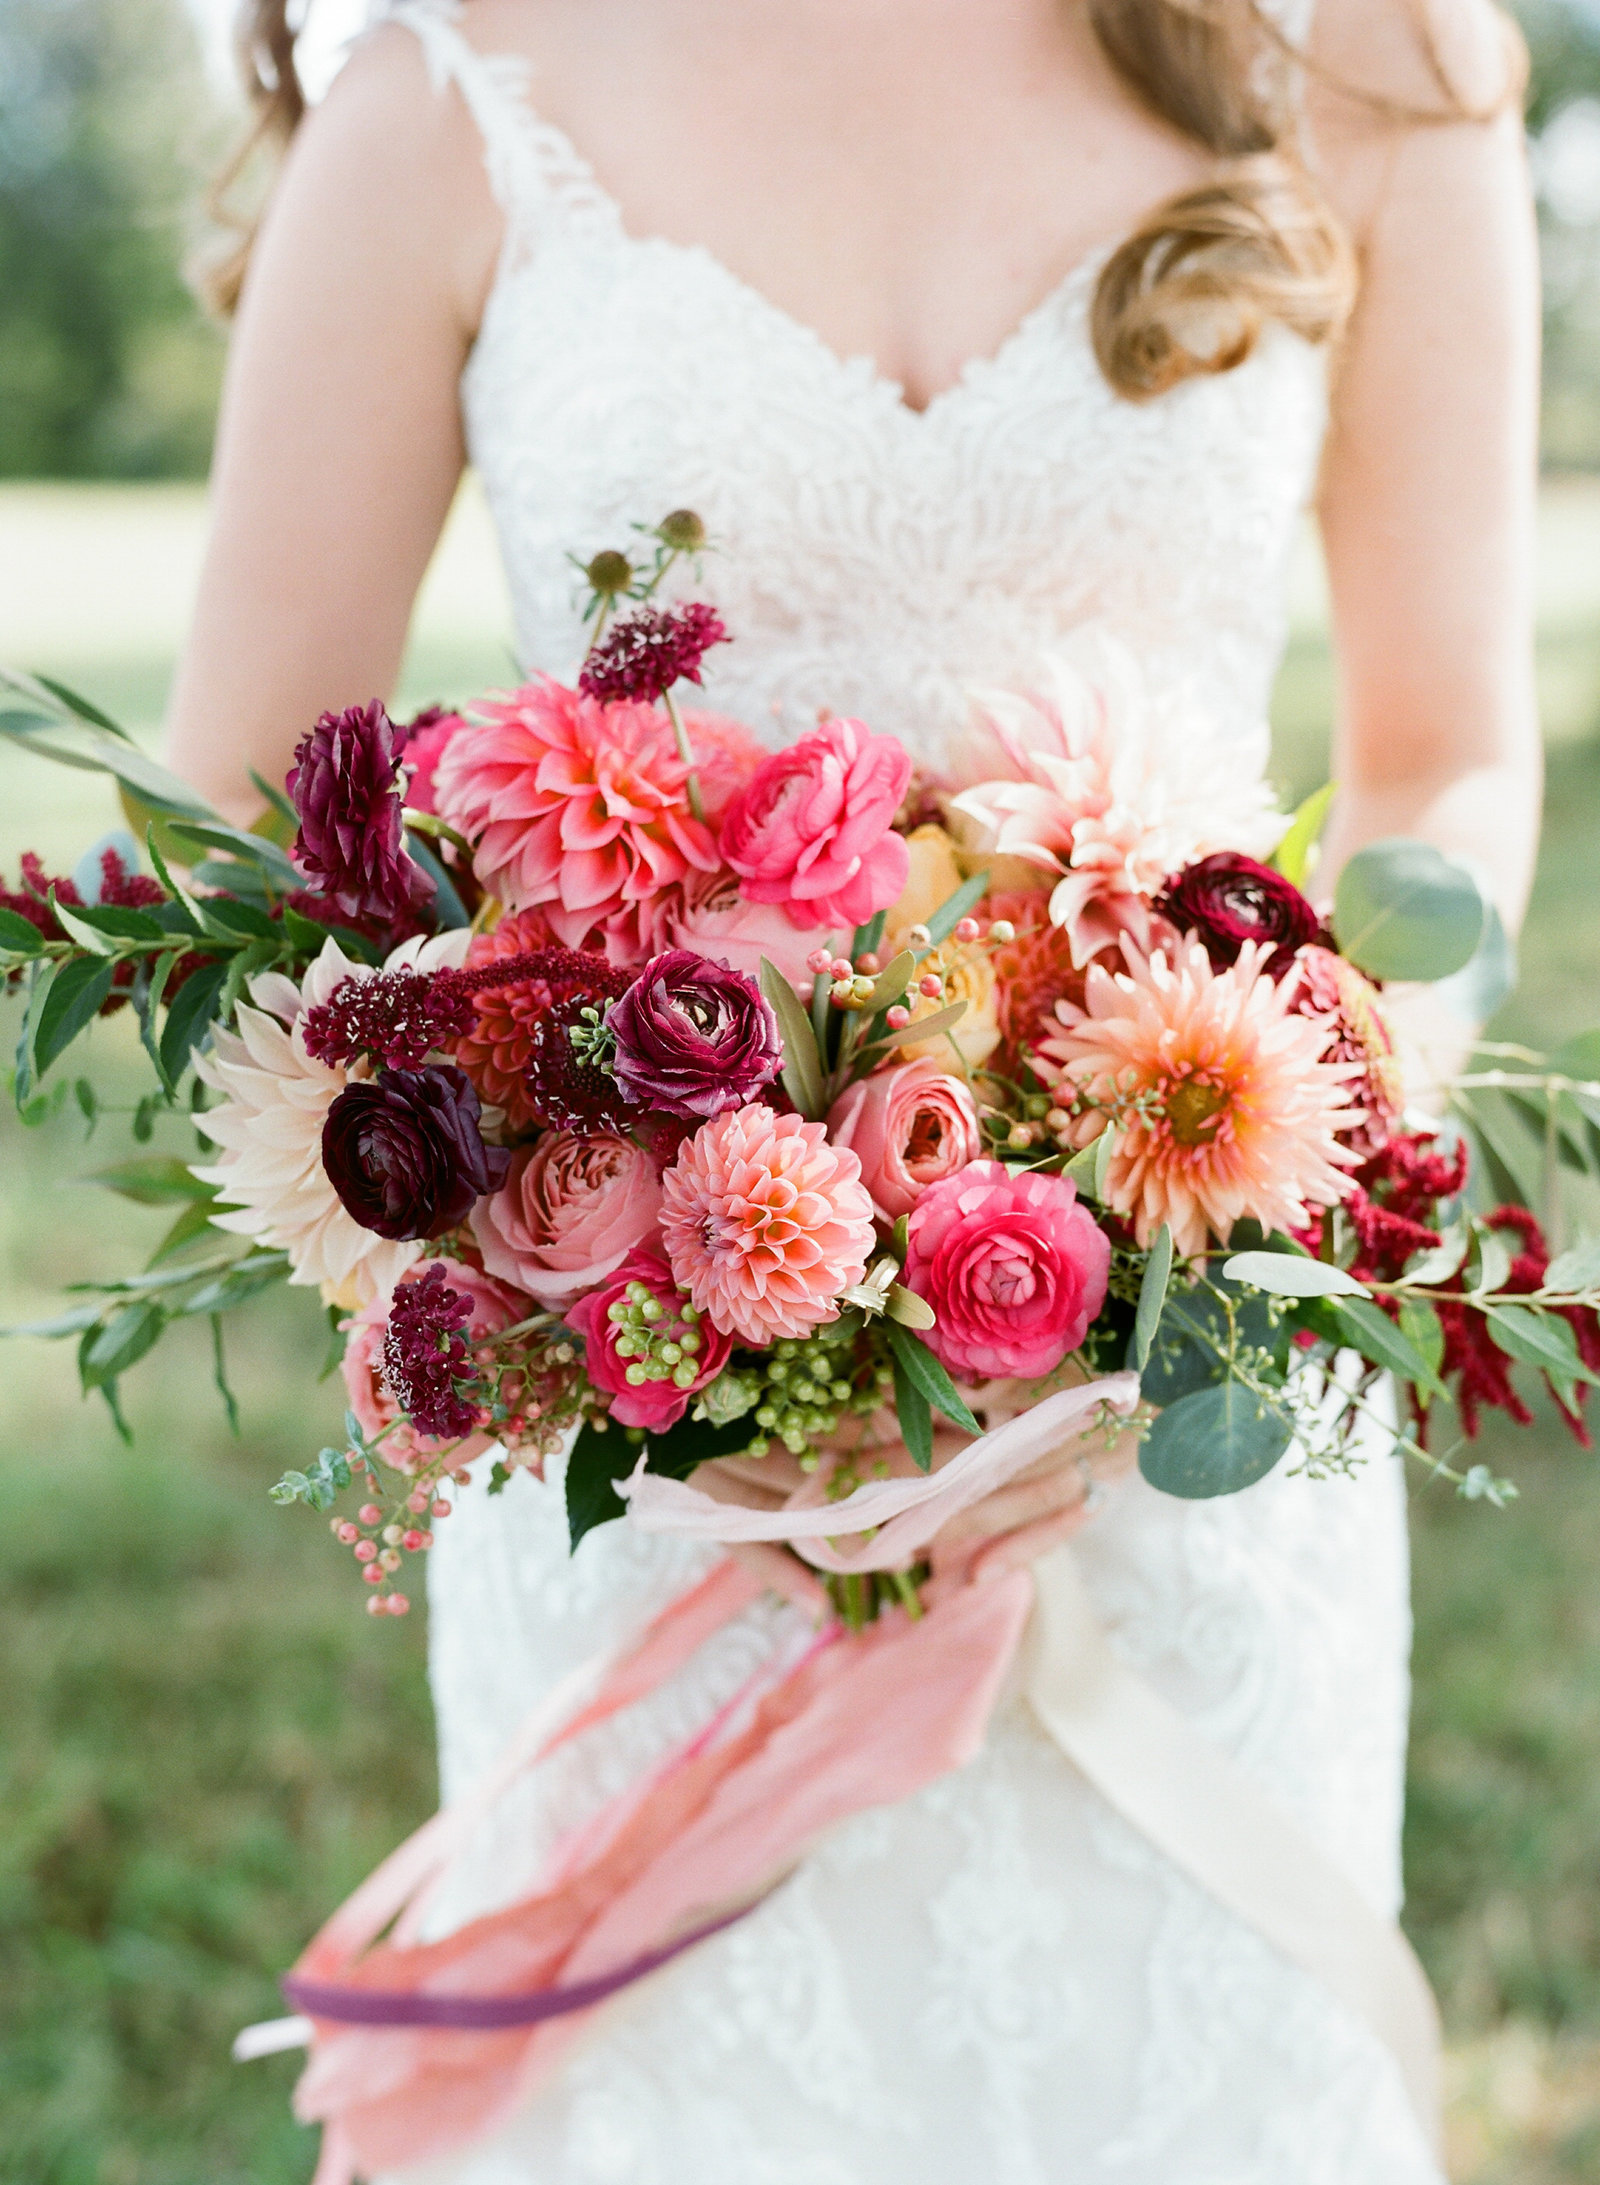 Pamela Barefoot, Atrendy, Warner Hall wedding, Virginia wedding, holly chapple bouquet